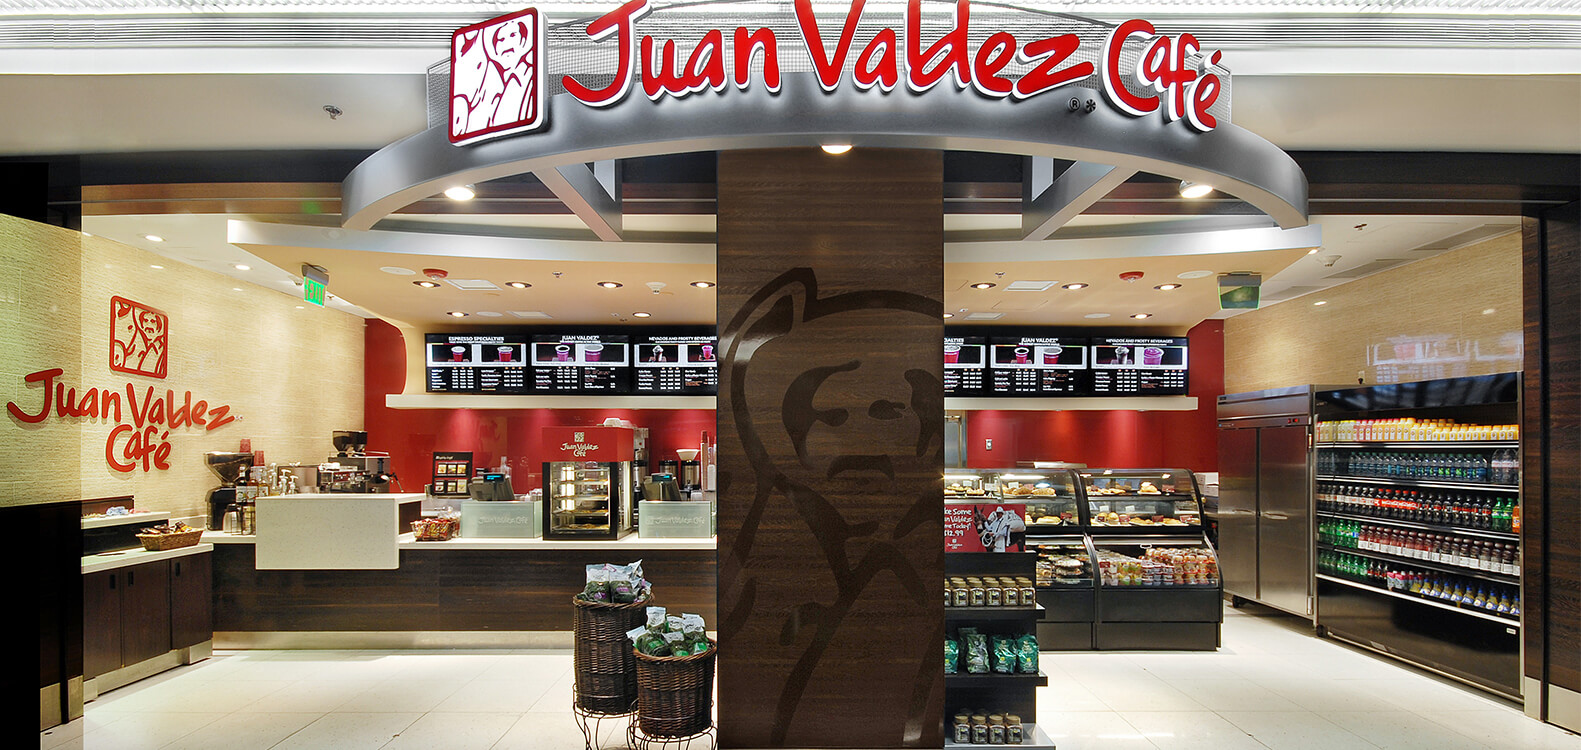 Juan Valdez Cafe, Miami